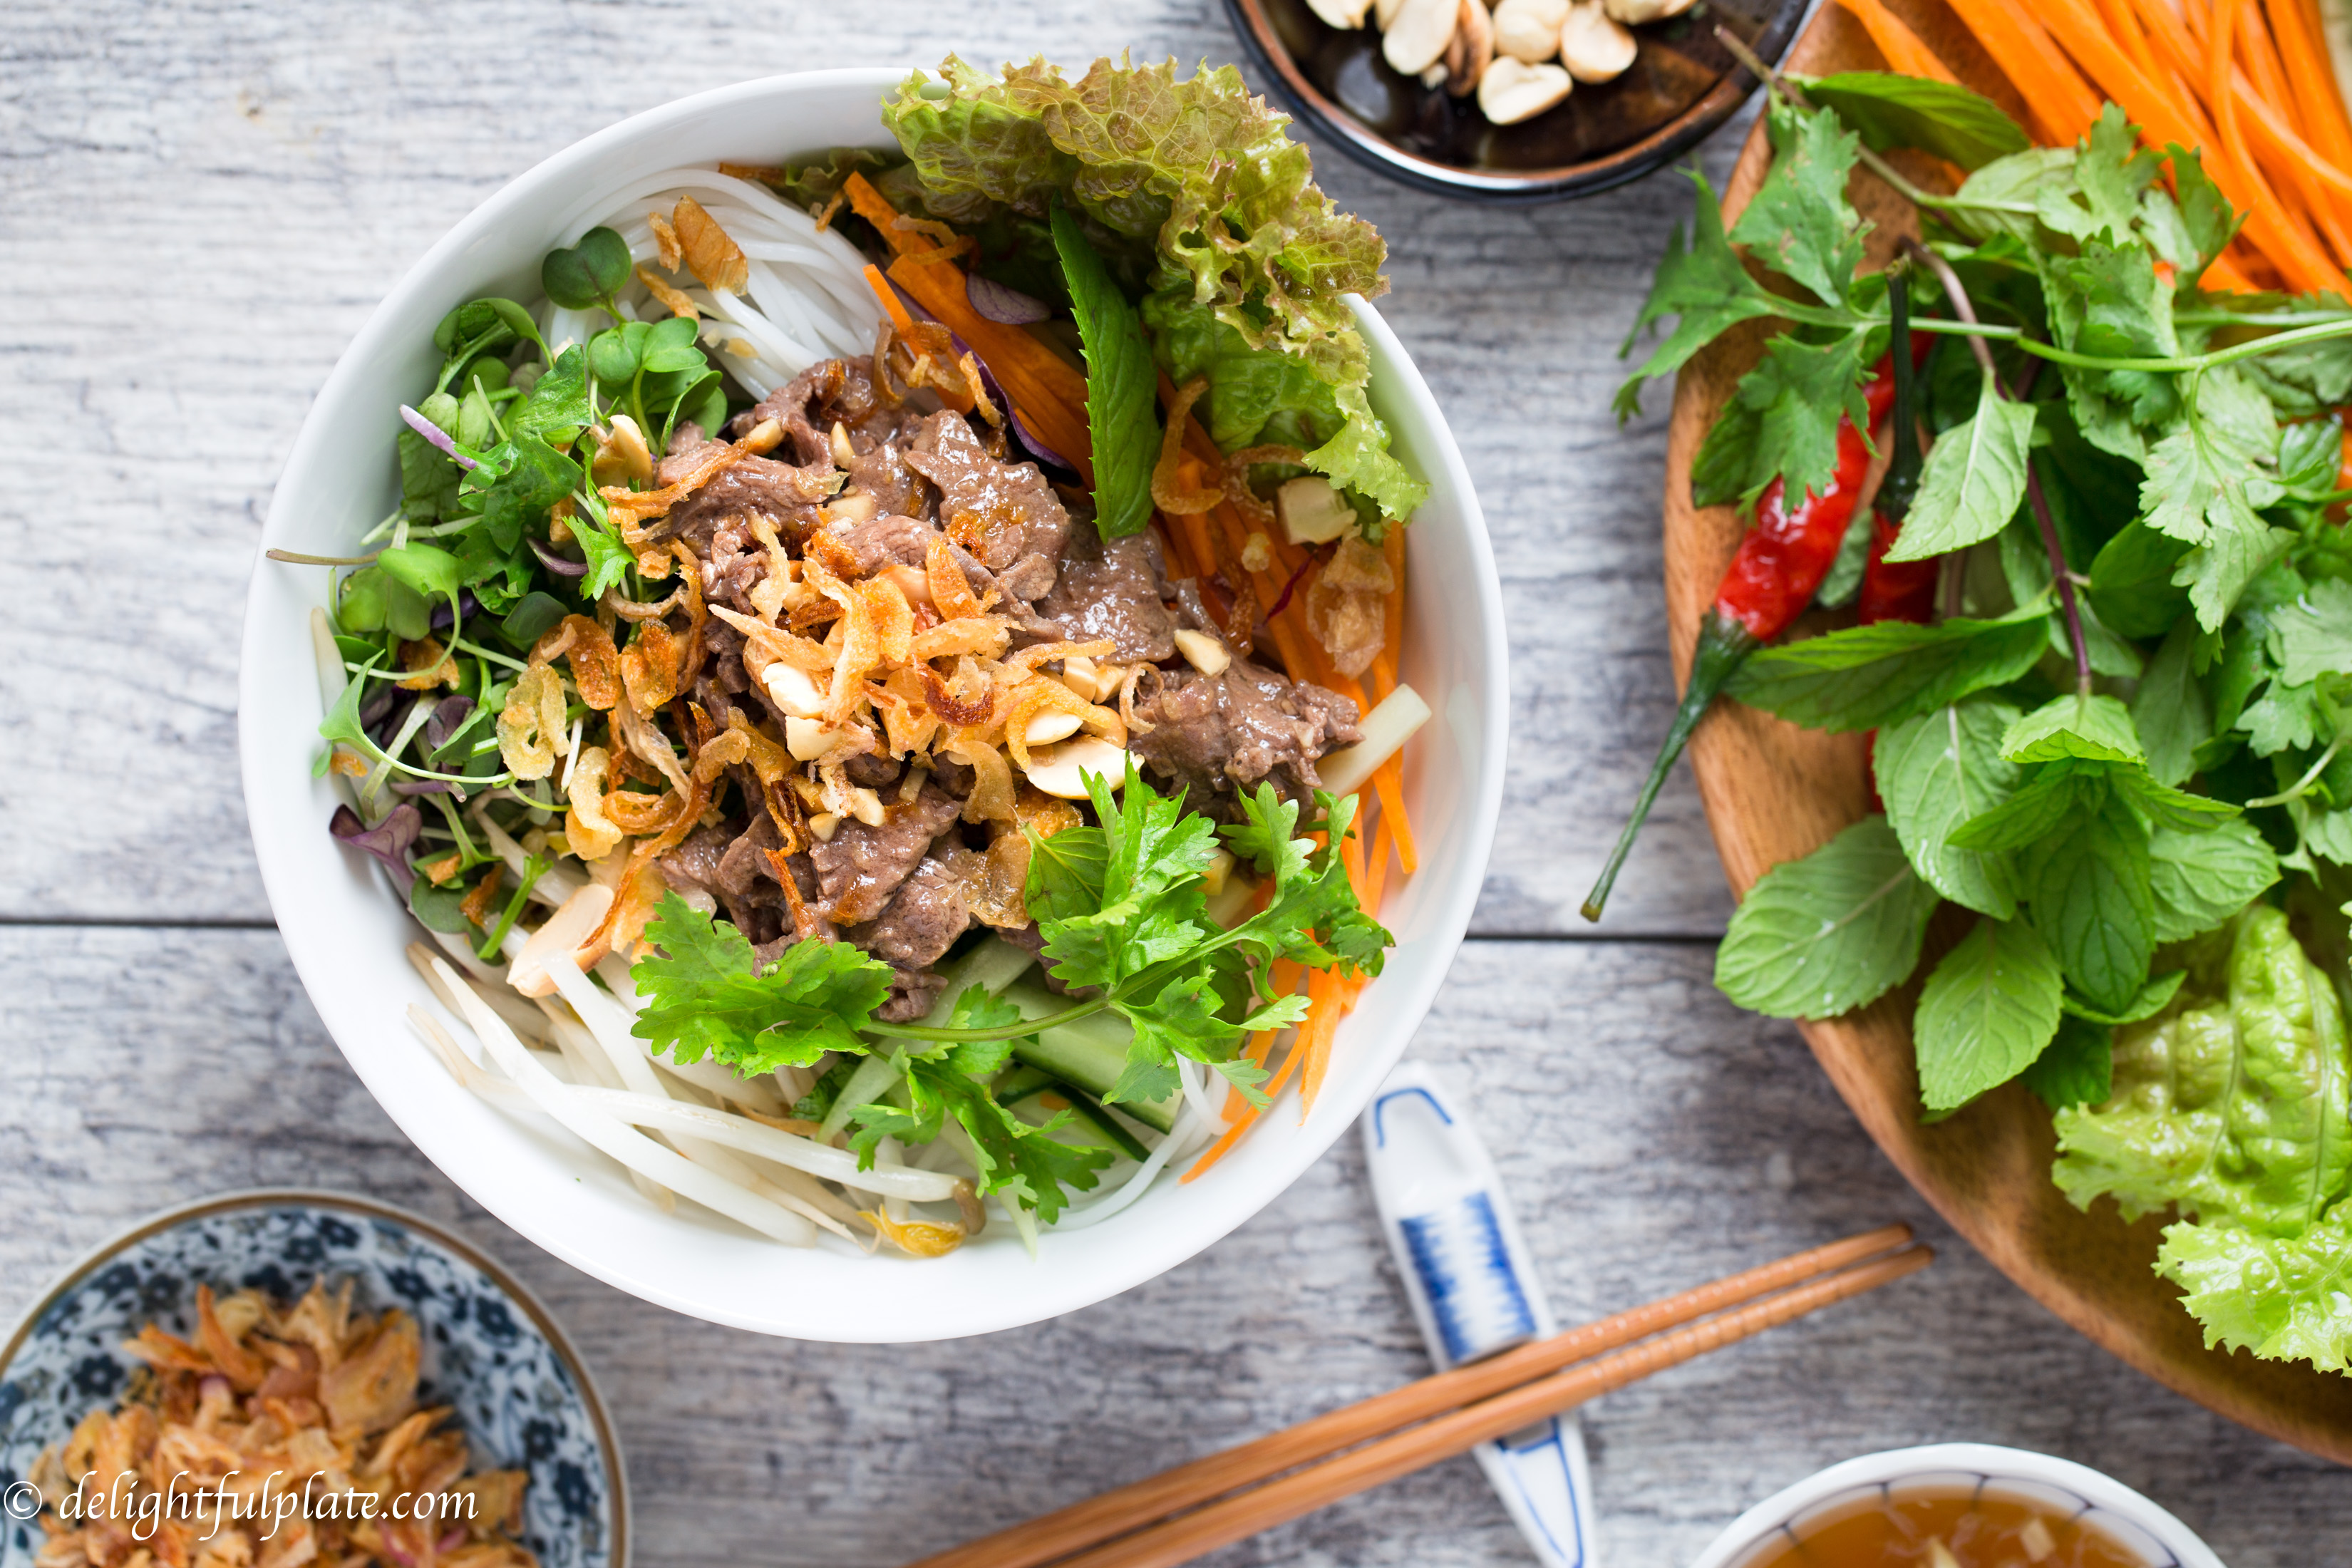 Vietnamese Beef Noodle Salad (Bun Bo Xao) is very tasty with flavorful beef, fresh herbs and veggies. It is quick and easy to make, and can be either a main or side dish.